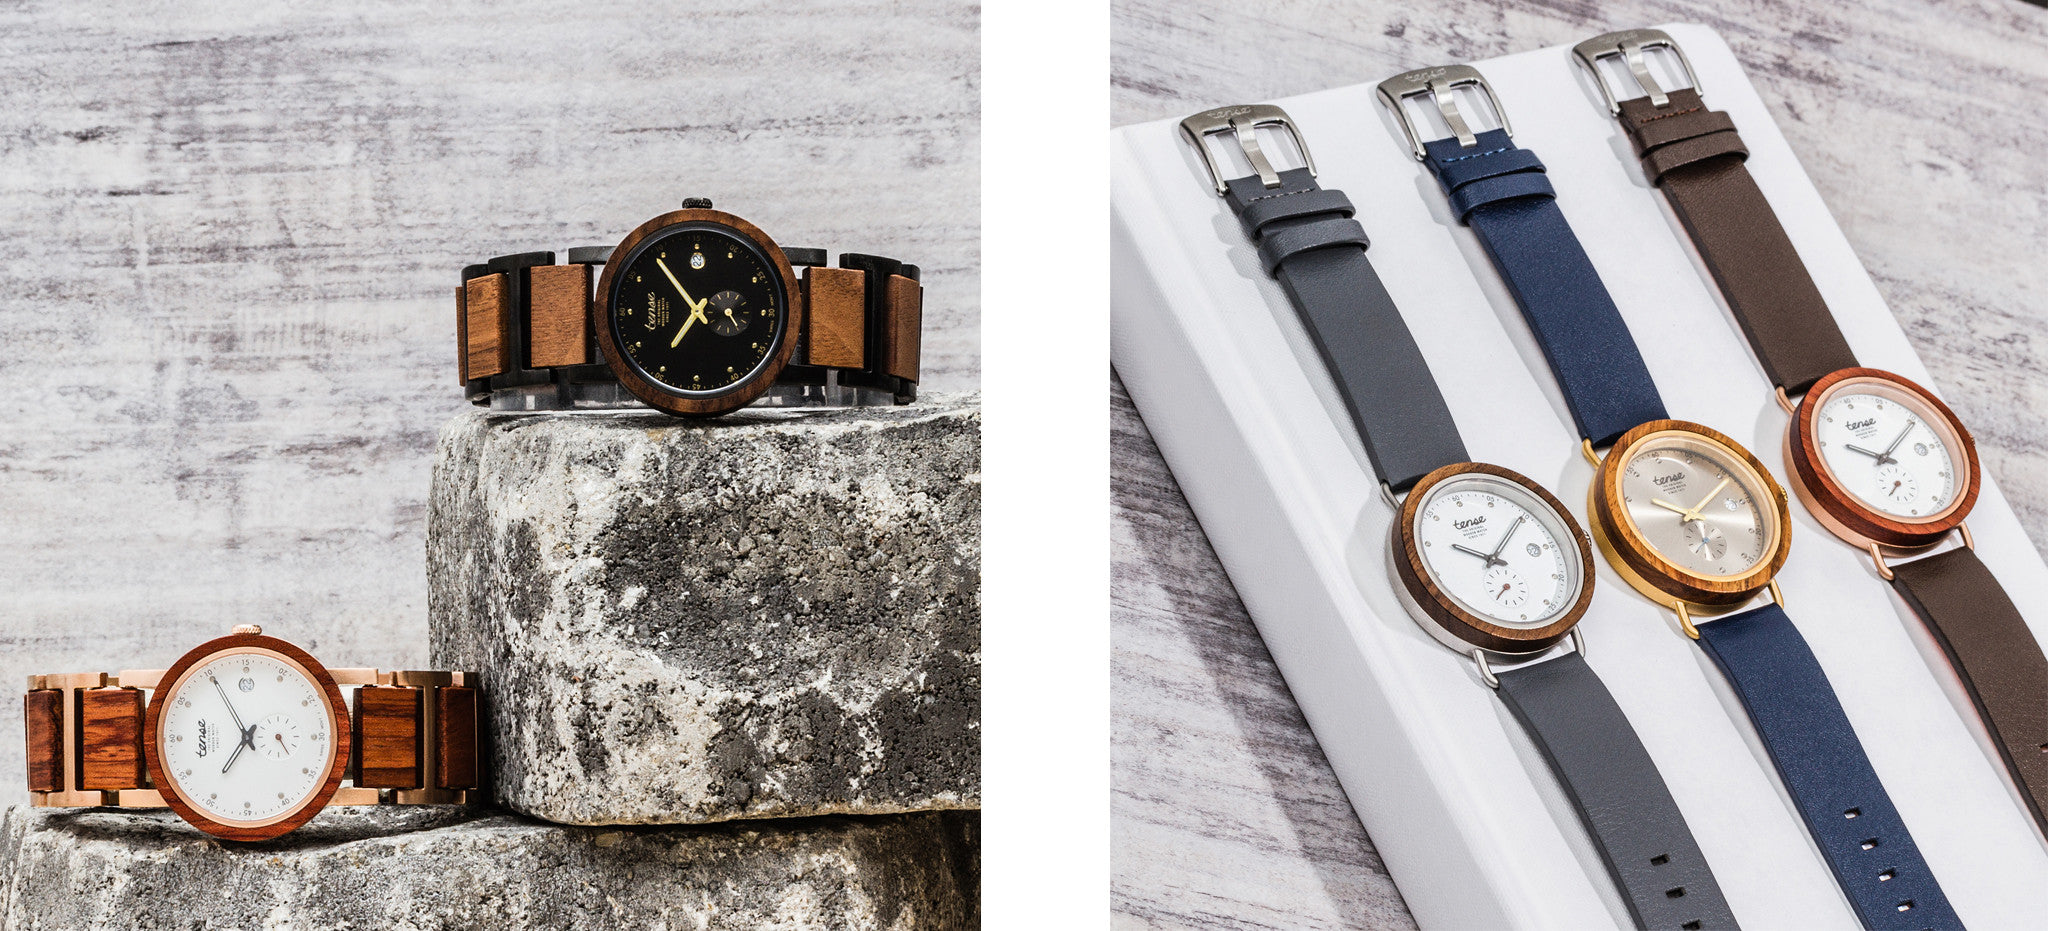 Tense Waterproof Hudson Watches